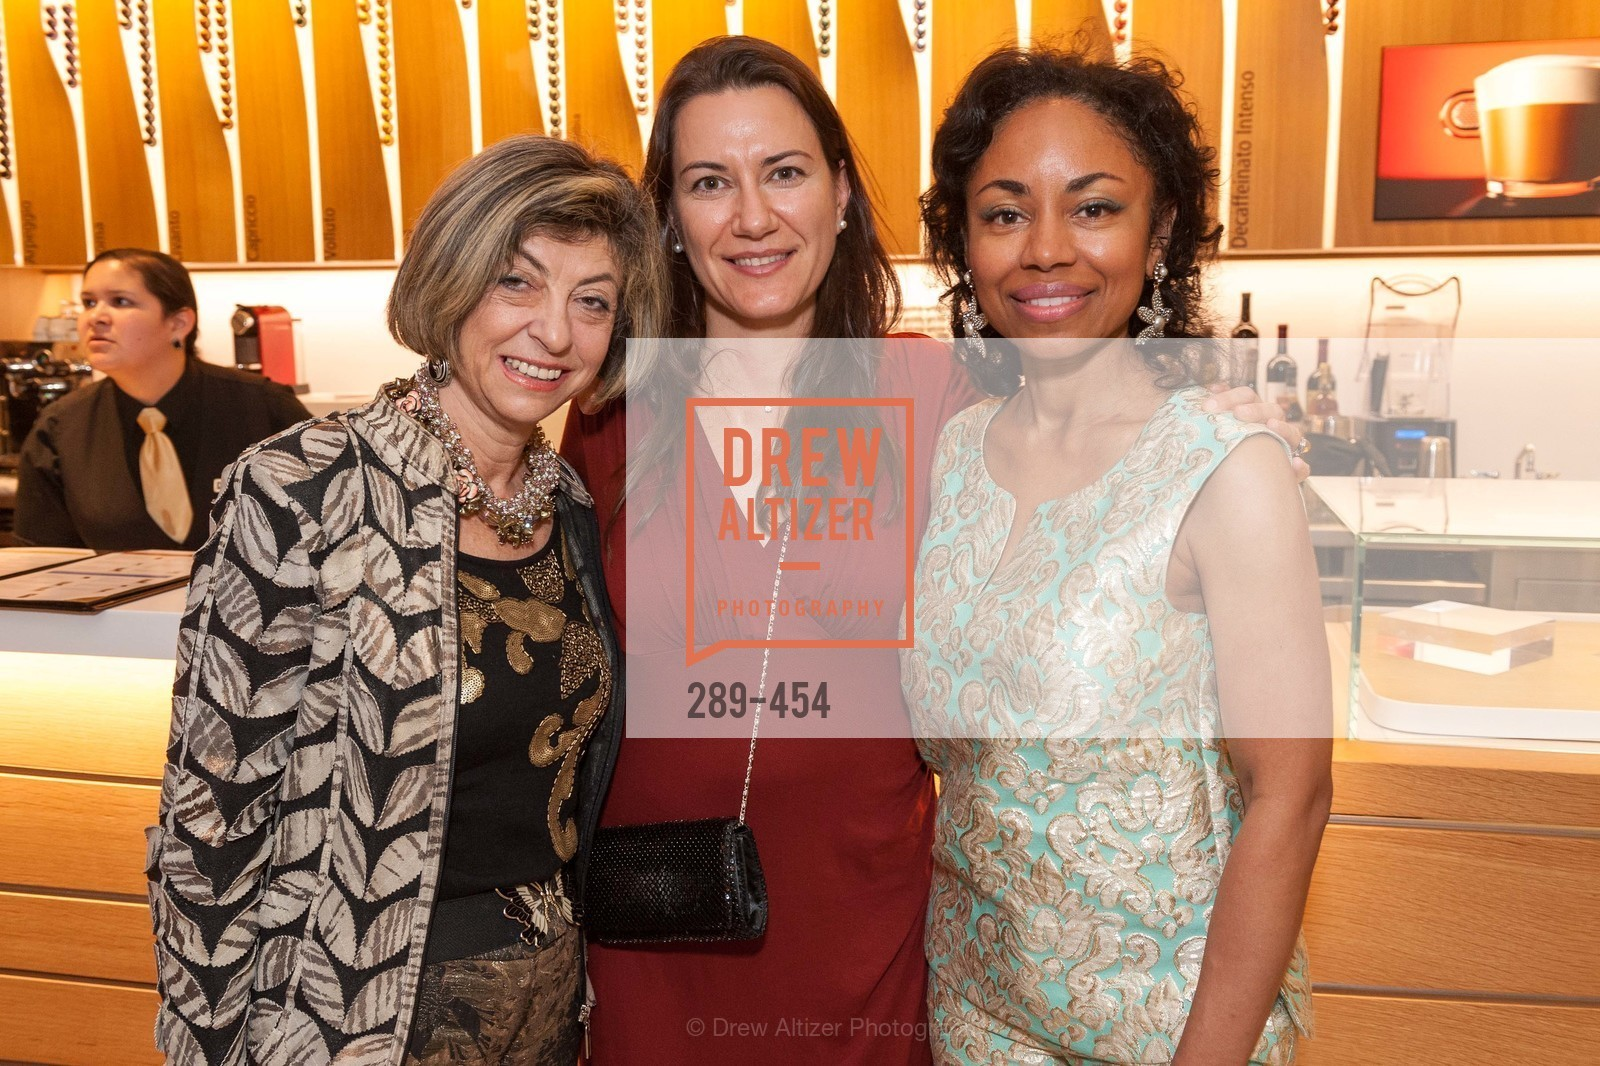 Ludmila Eggleton, Zumra Maner, Tanya Powell, 2014 SAN FRANCISCO BALLET ENCORE! Kick-Off Party, US. Nespresso Boutique Bar, 90 Grant Avenue, January 7th, 2014